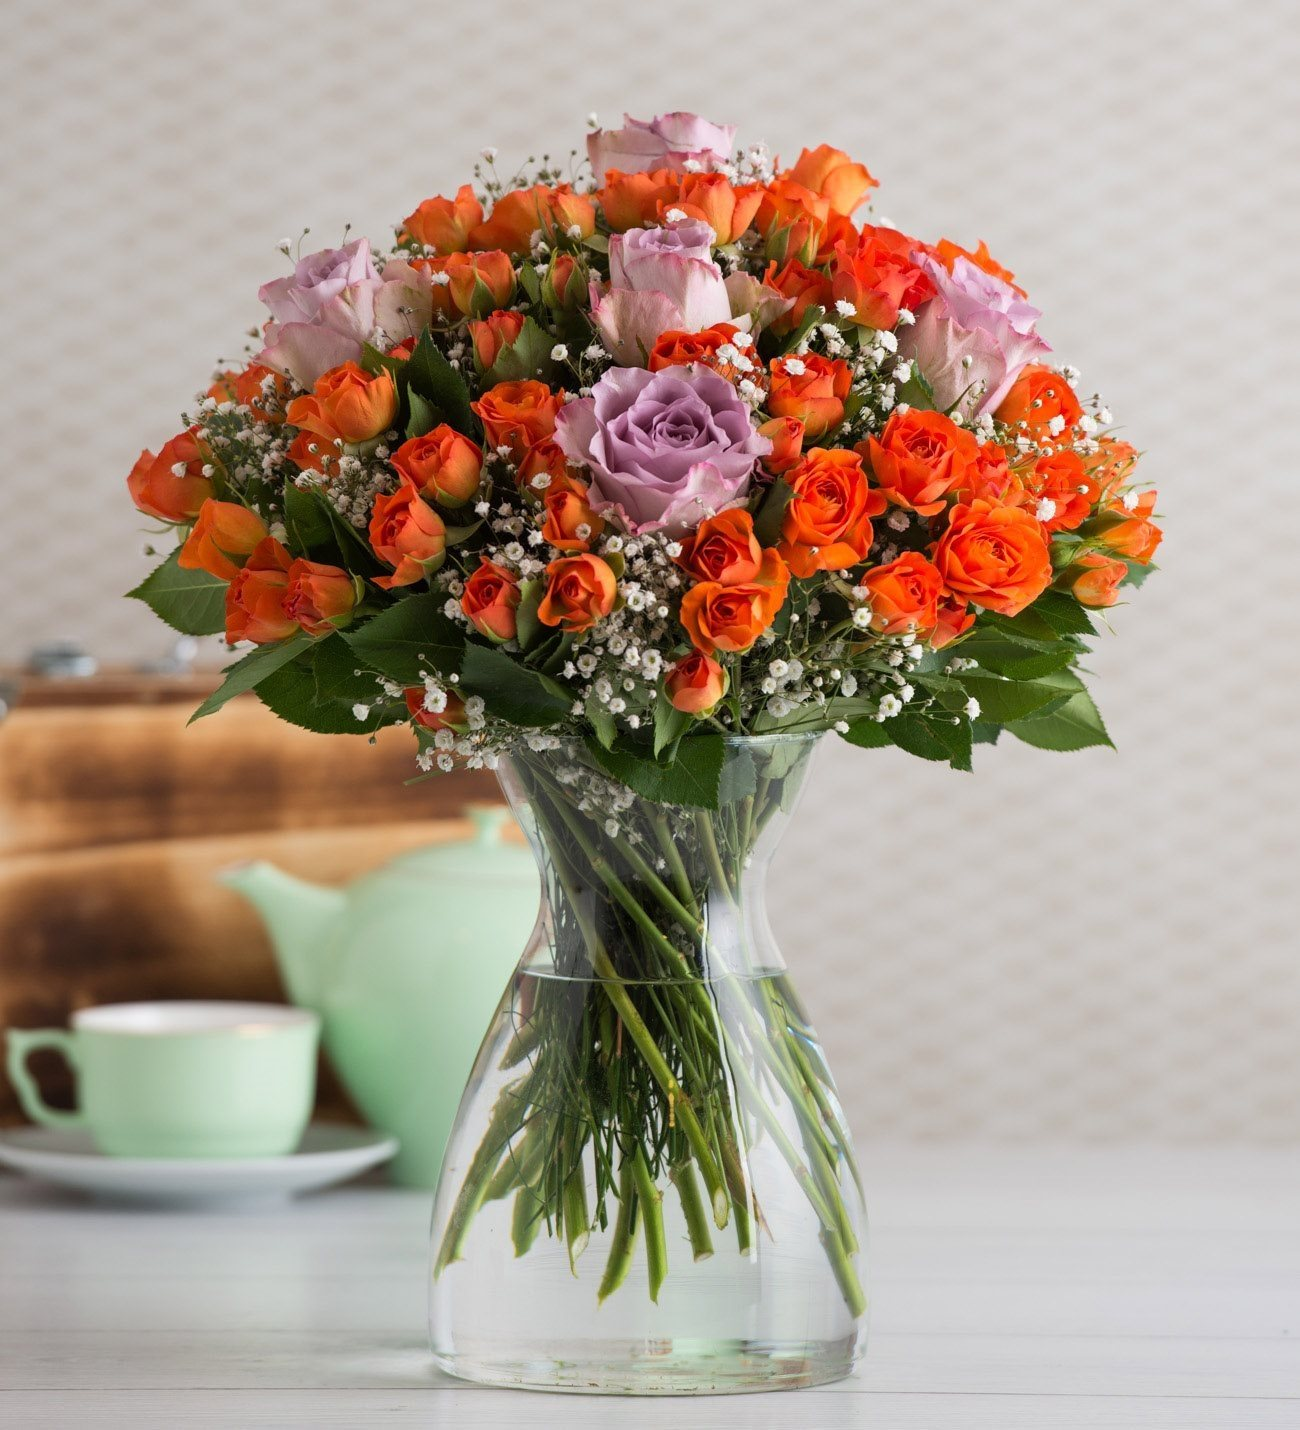 60 Orange Rambler Roses And 5 Lilac Roses Summery Twinkle